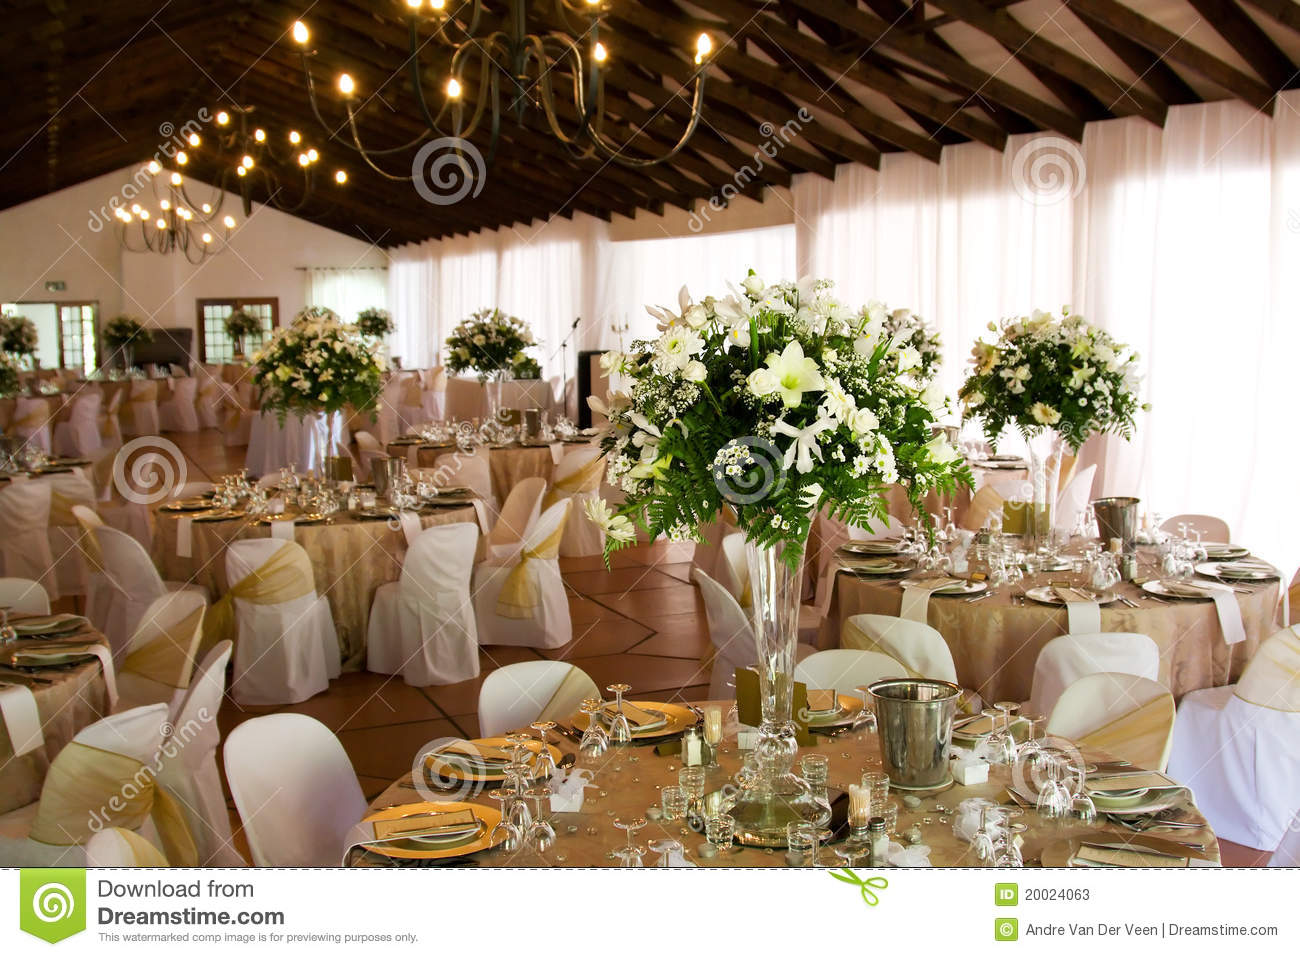 Indoors Wedding Reception Venue With Decor Stock Image Image Of